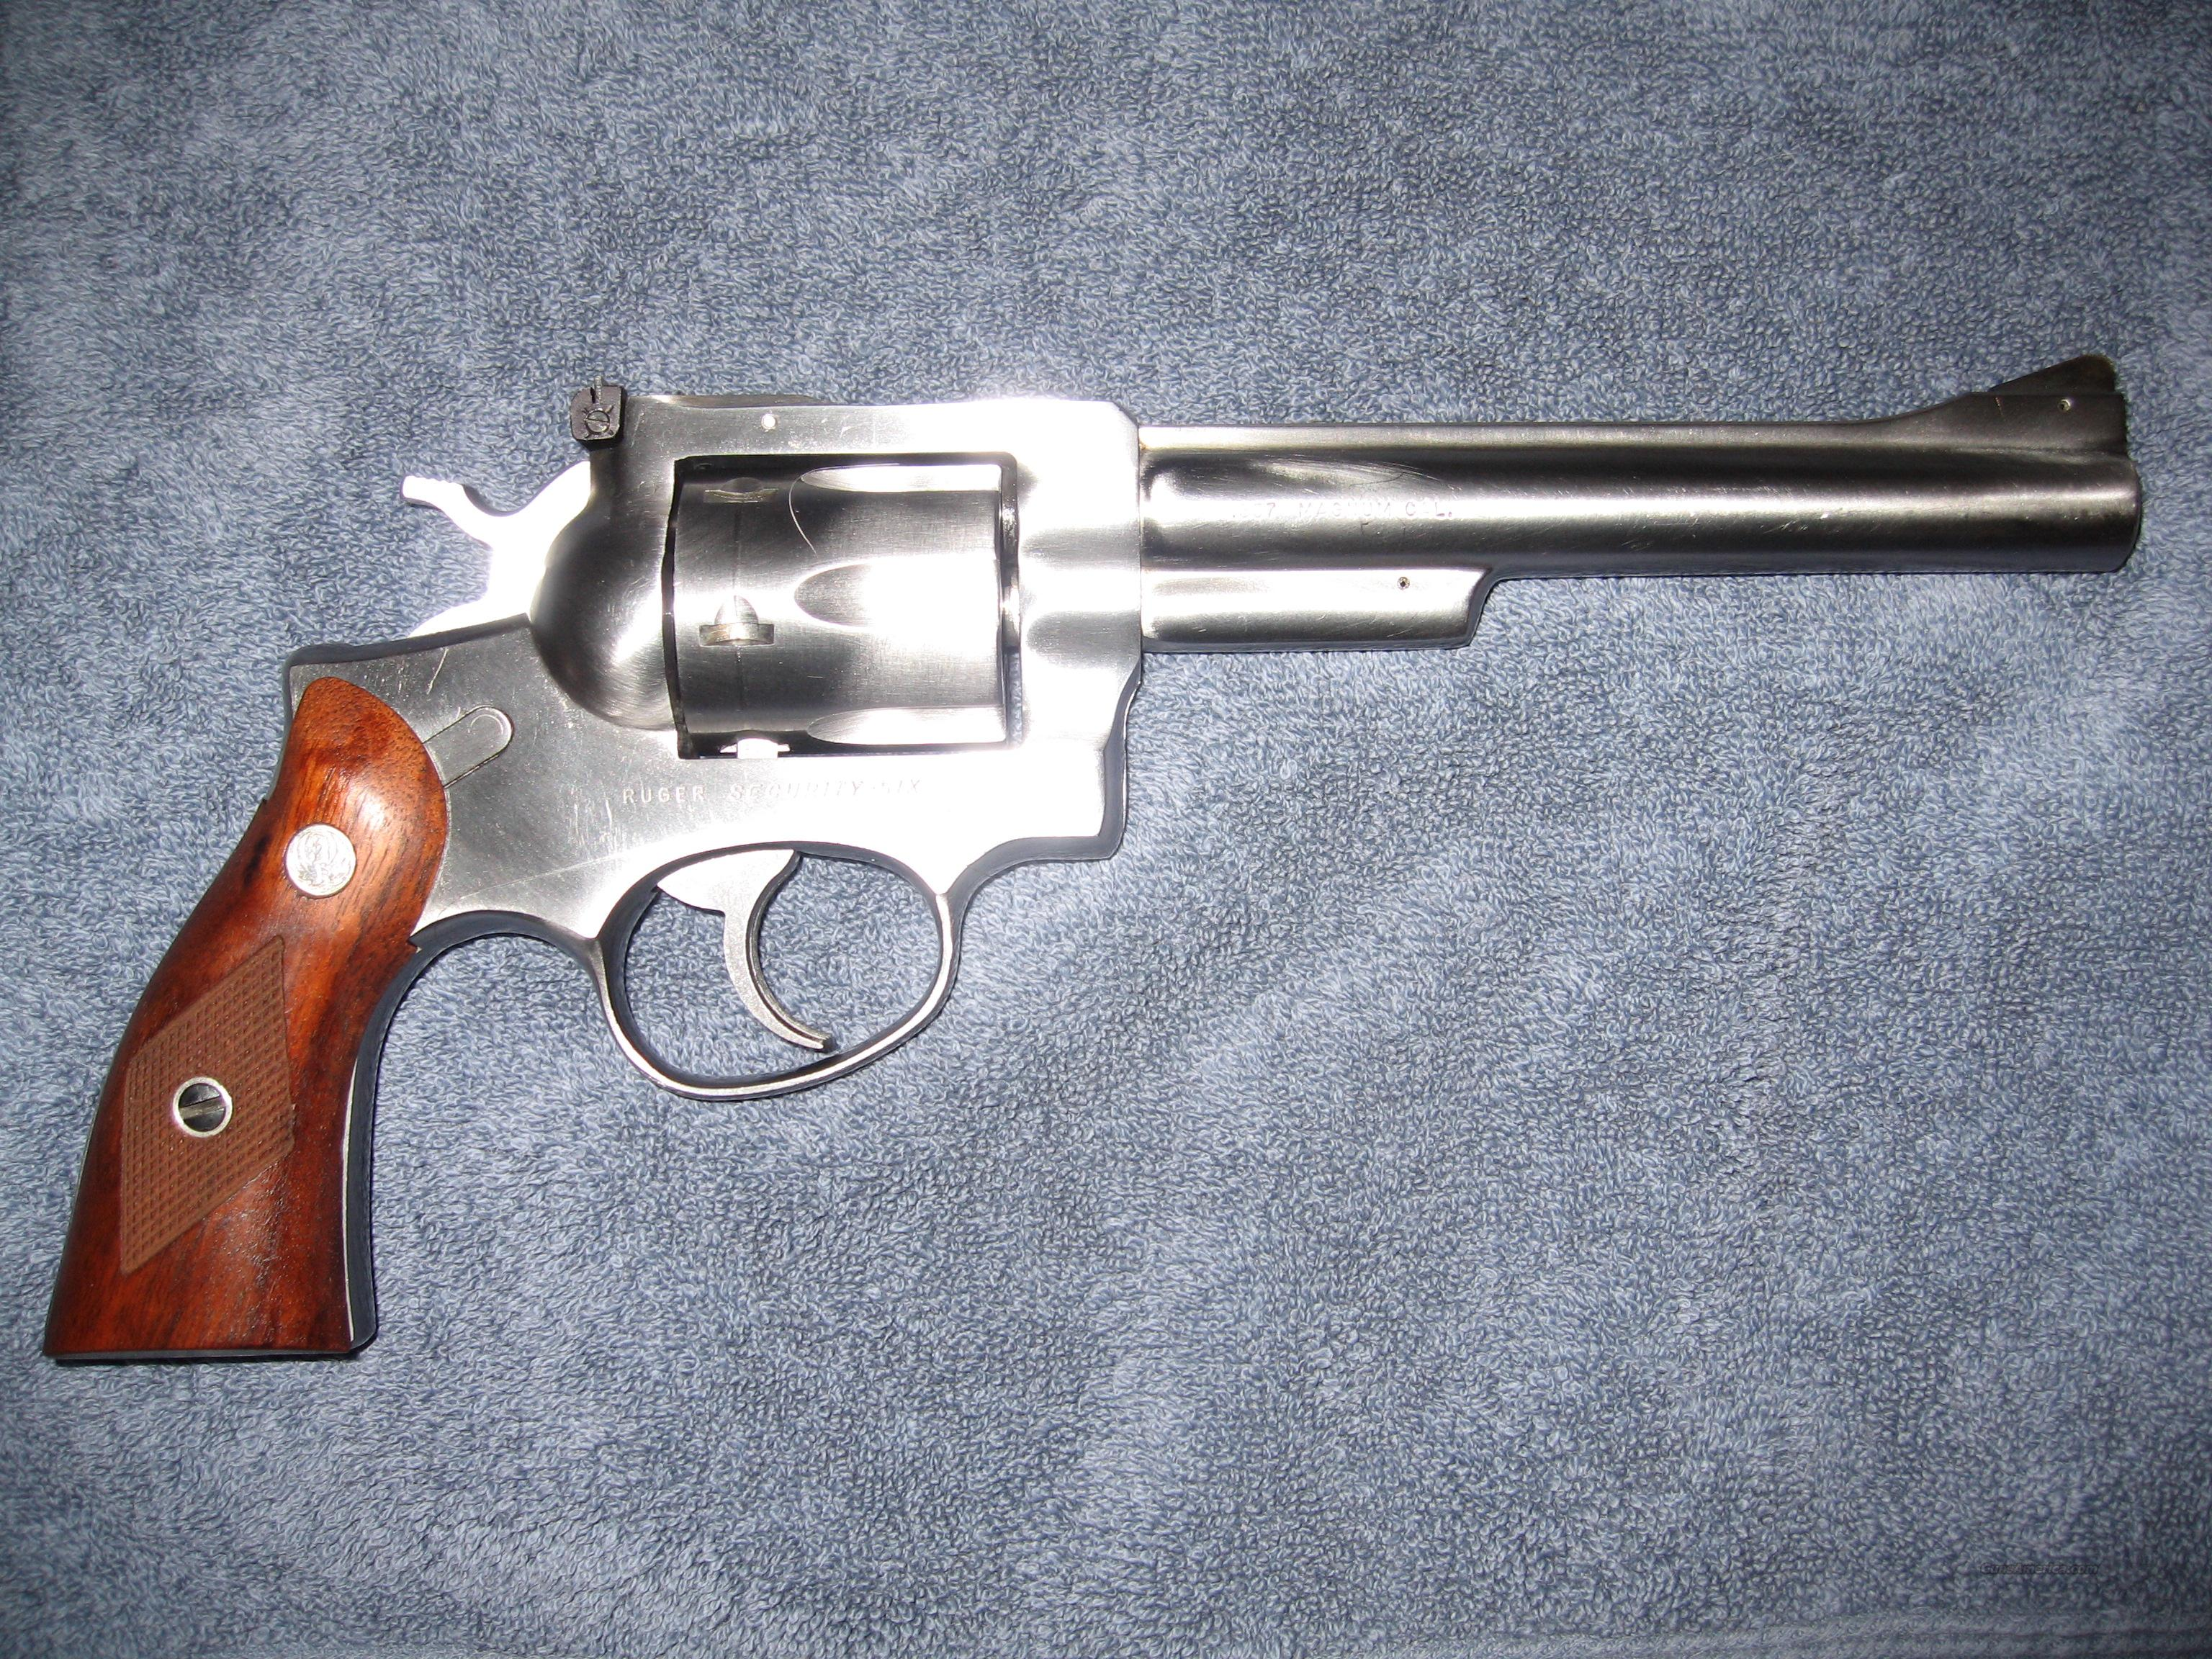 Security Six Stainless 1970's  Guns > Pistols > Ruger Double Action Revolver > Security Six Type